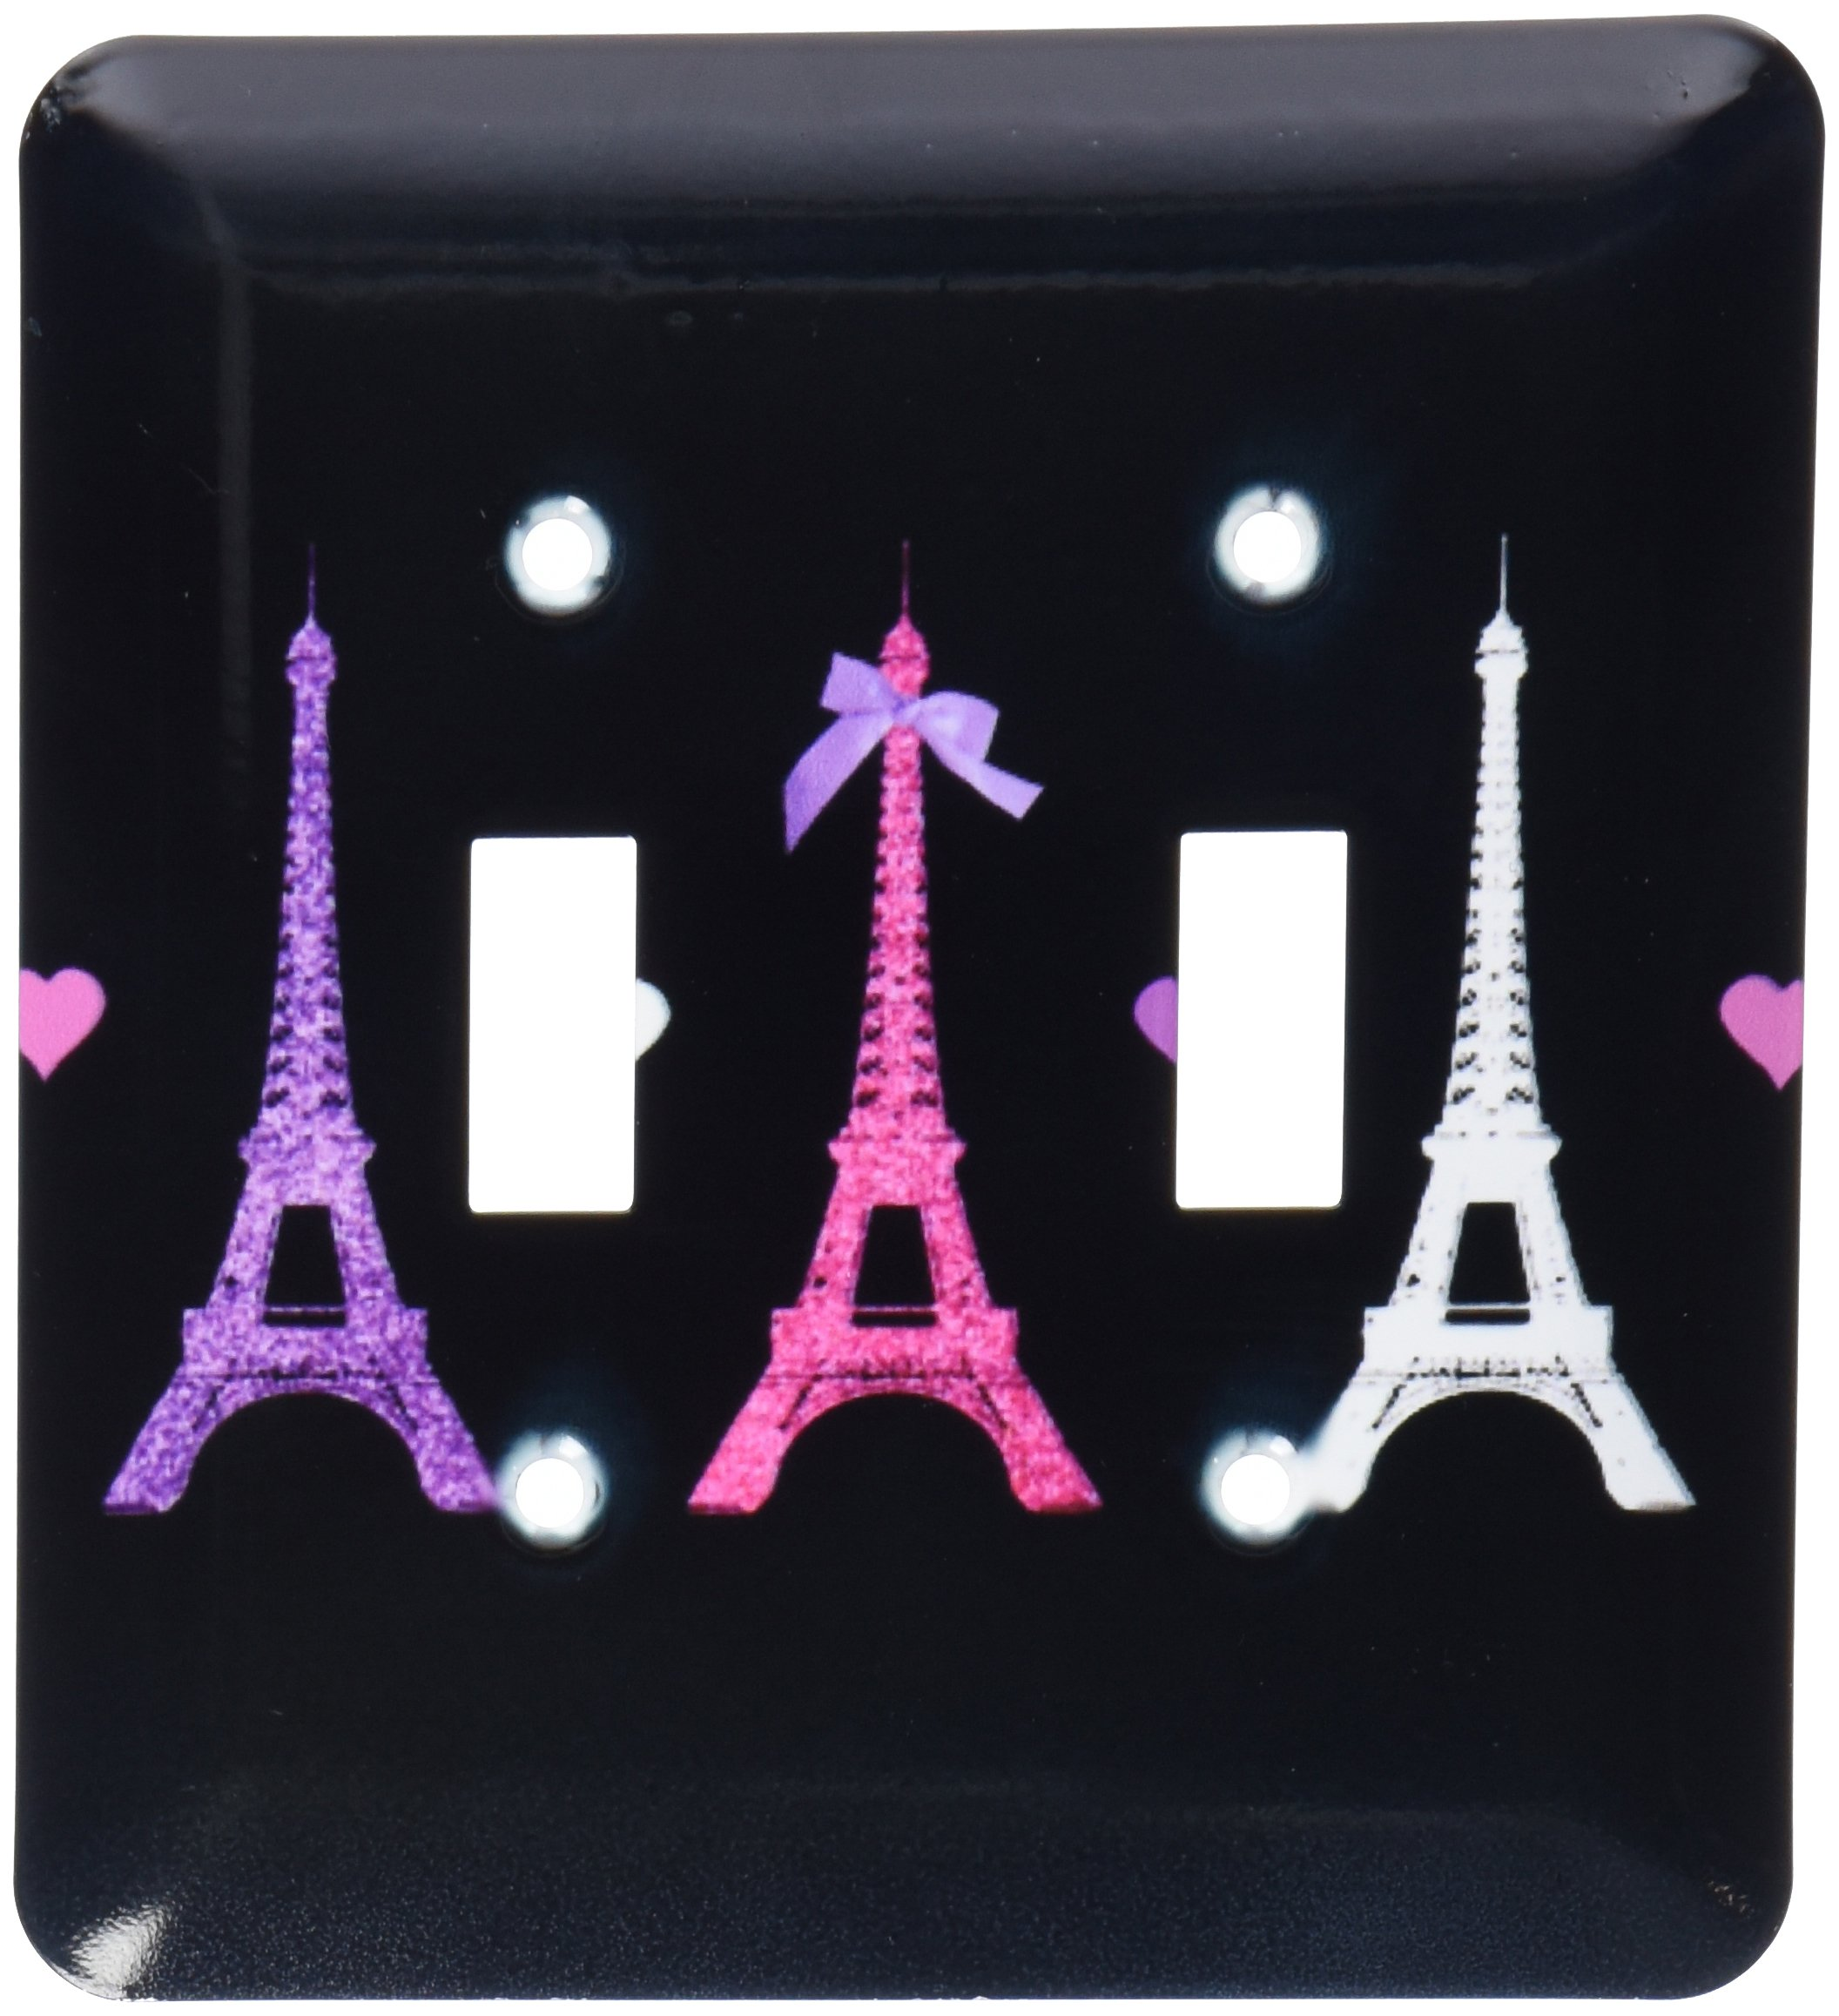 3dRose LLC lsp_113151_2 Girly Eiffel Tower Hot Pink Purple Black Paris Towers Love Hearts Stylish French Modern France Double Toggle Switch by 3dRose (Image #1)